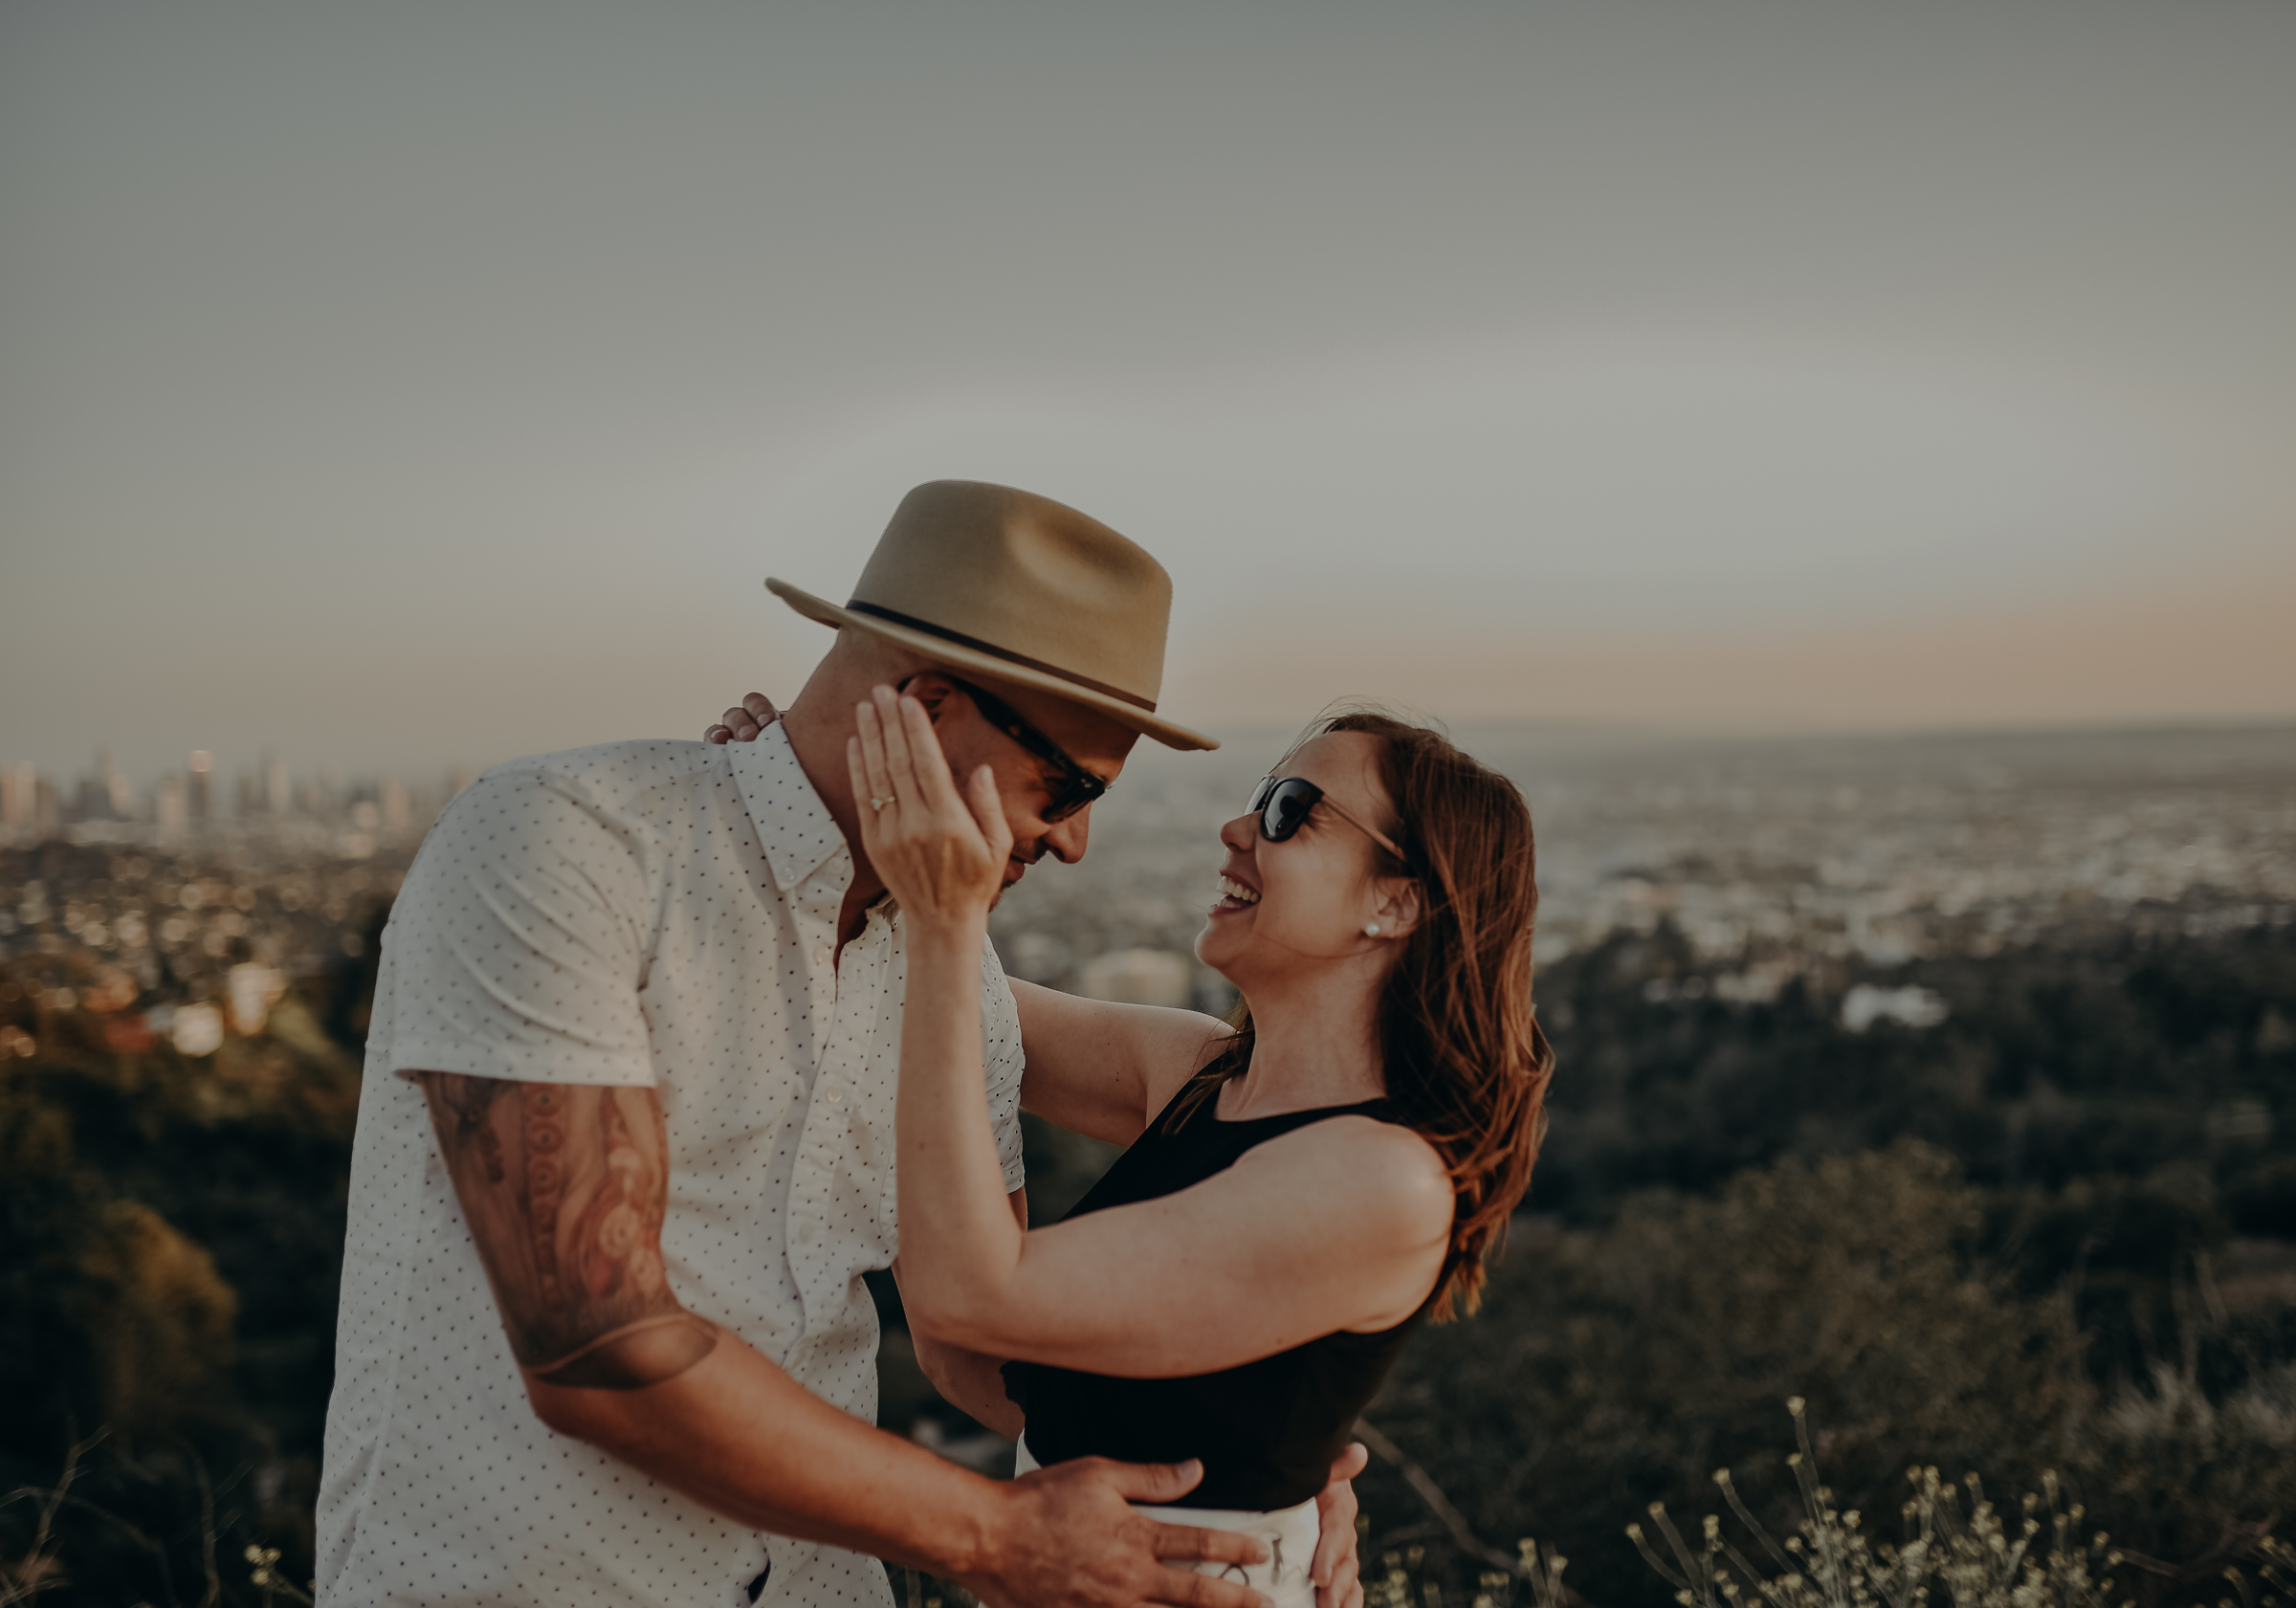 Los Angeles Wedding Photographers - Griffith Park Engagement - IsaiahAndTaylor.com-045.jpg